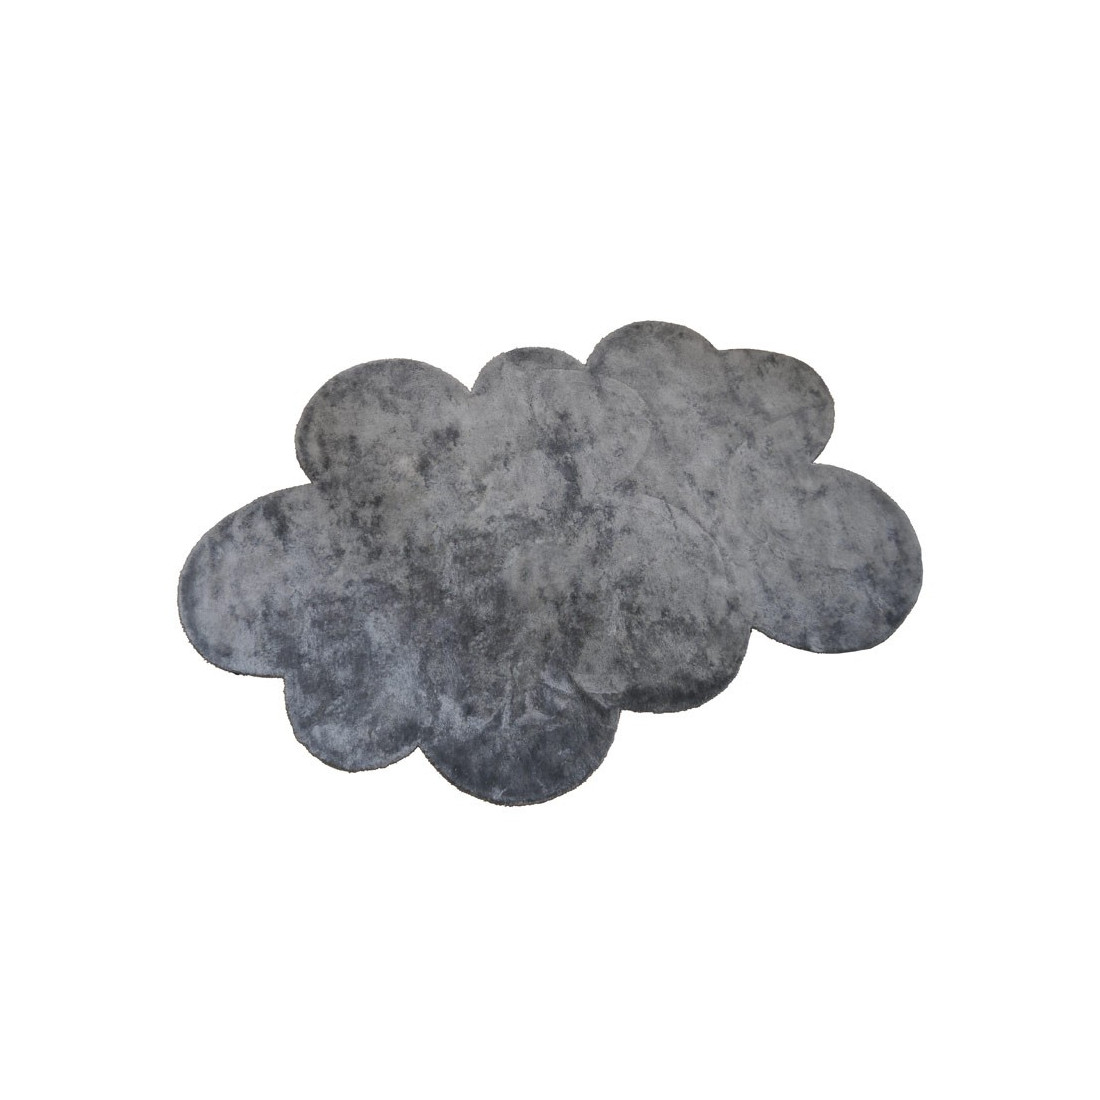 tapis enfant nuage gris fonc effet soie m dium pilepoil. Black Bedroom Furniture Sets. Home Design Ideas